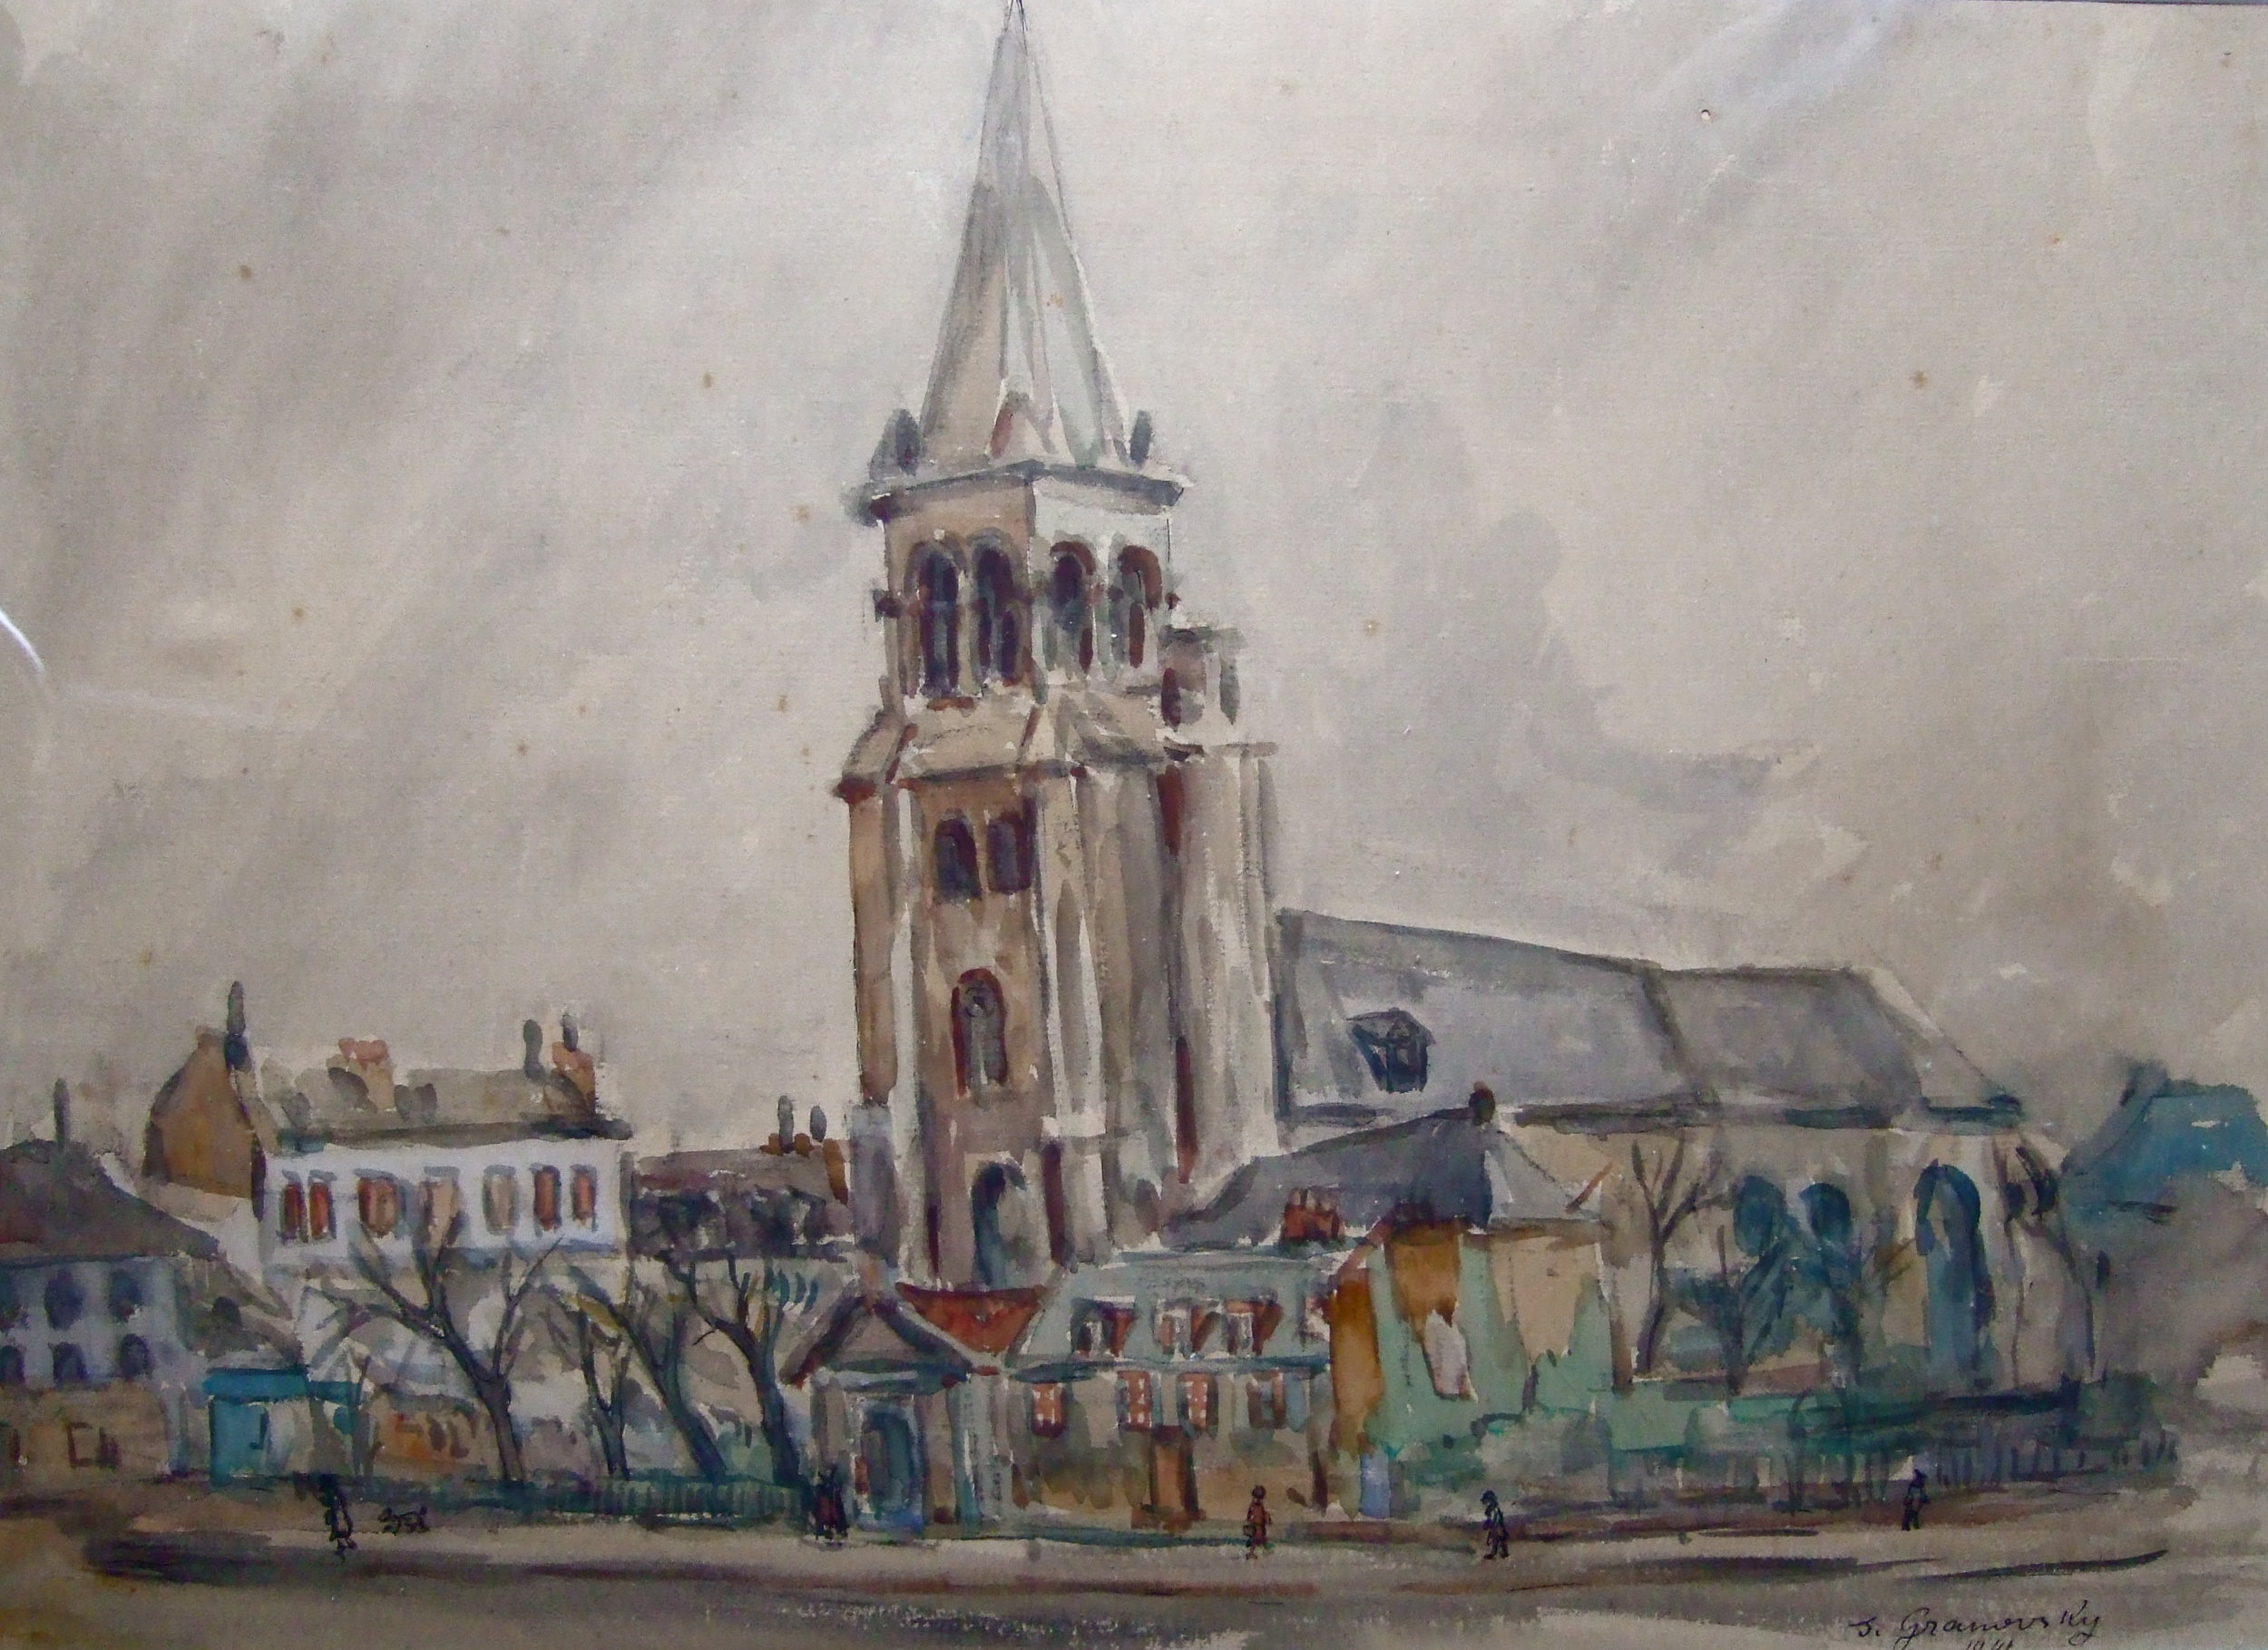 Provincial town.   Watercolor on paper. 49 x 35 cm. Signed and dated 1941.